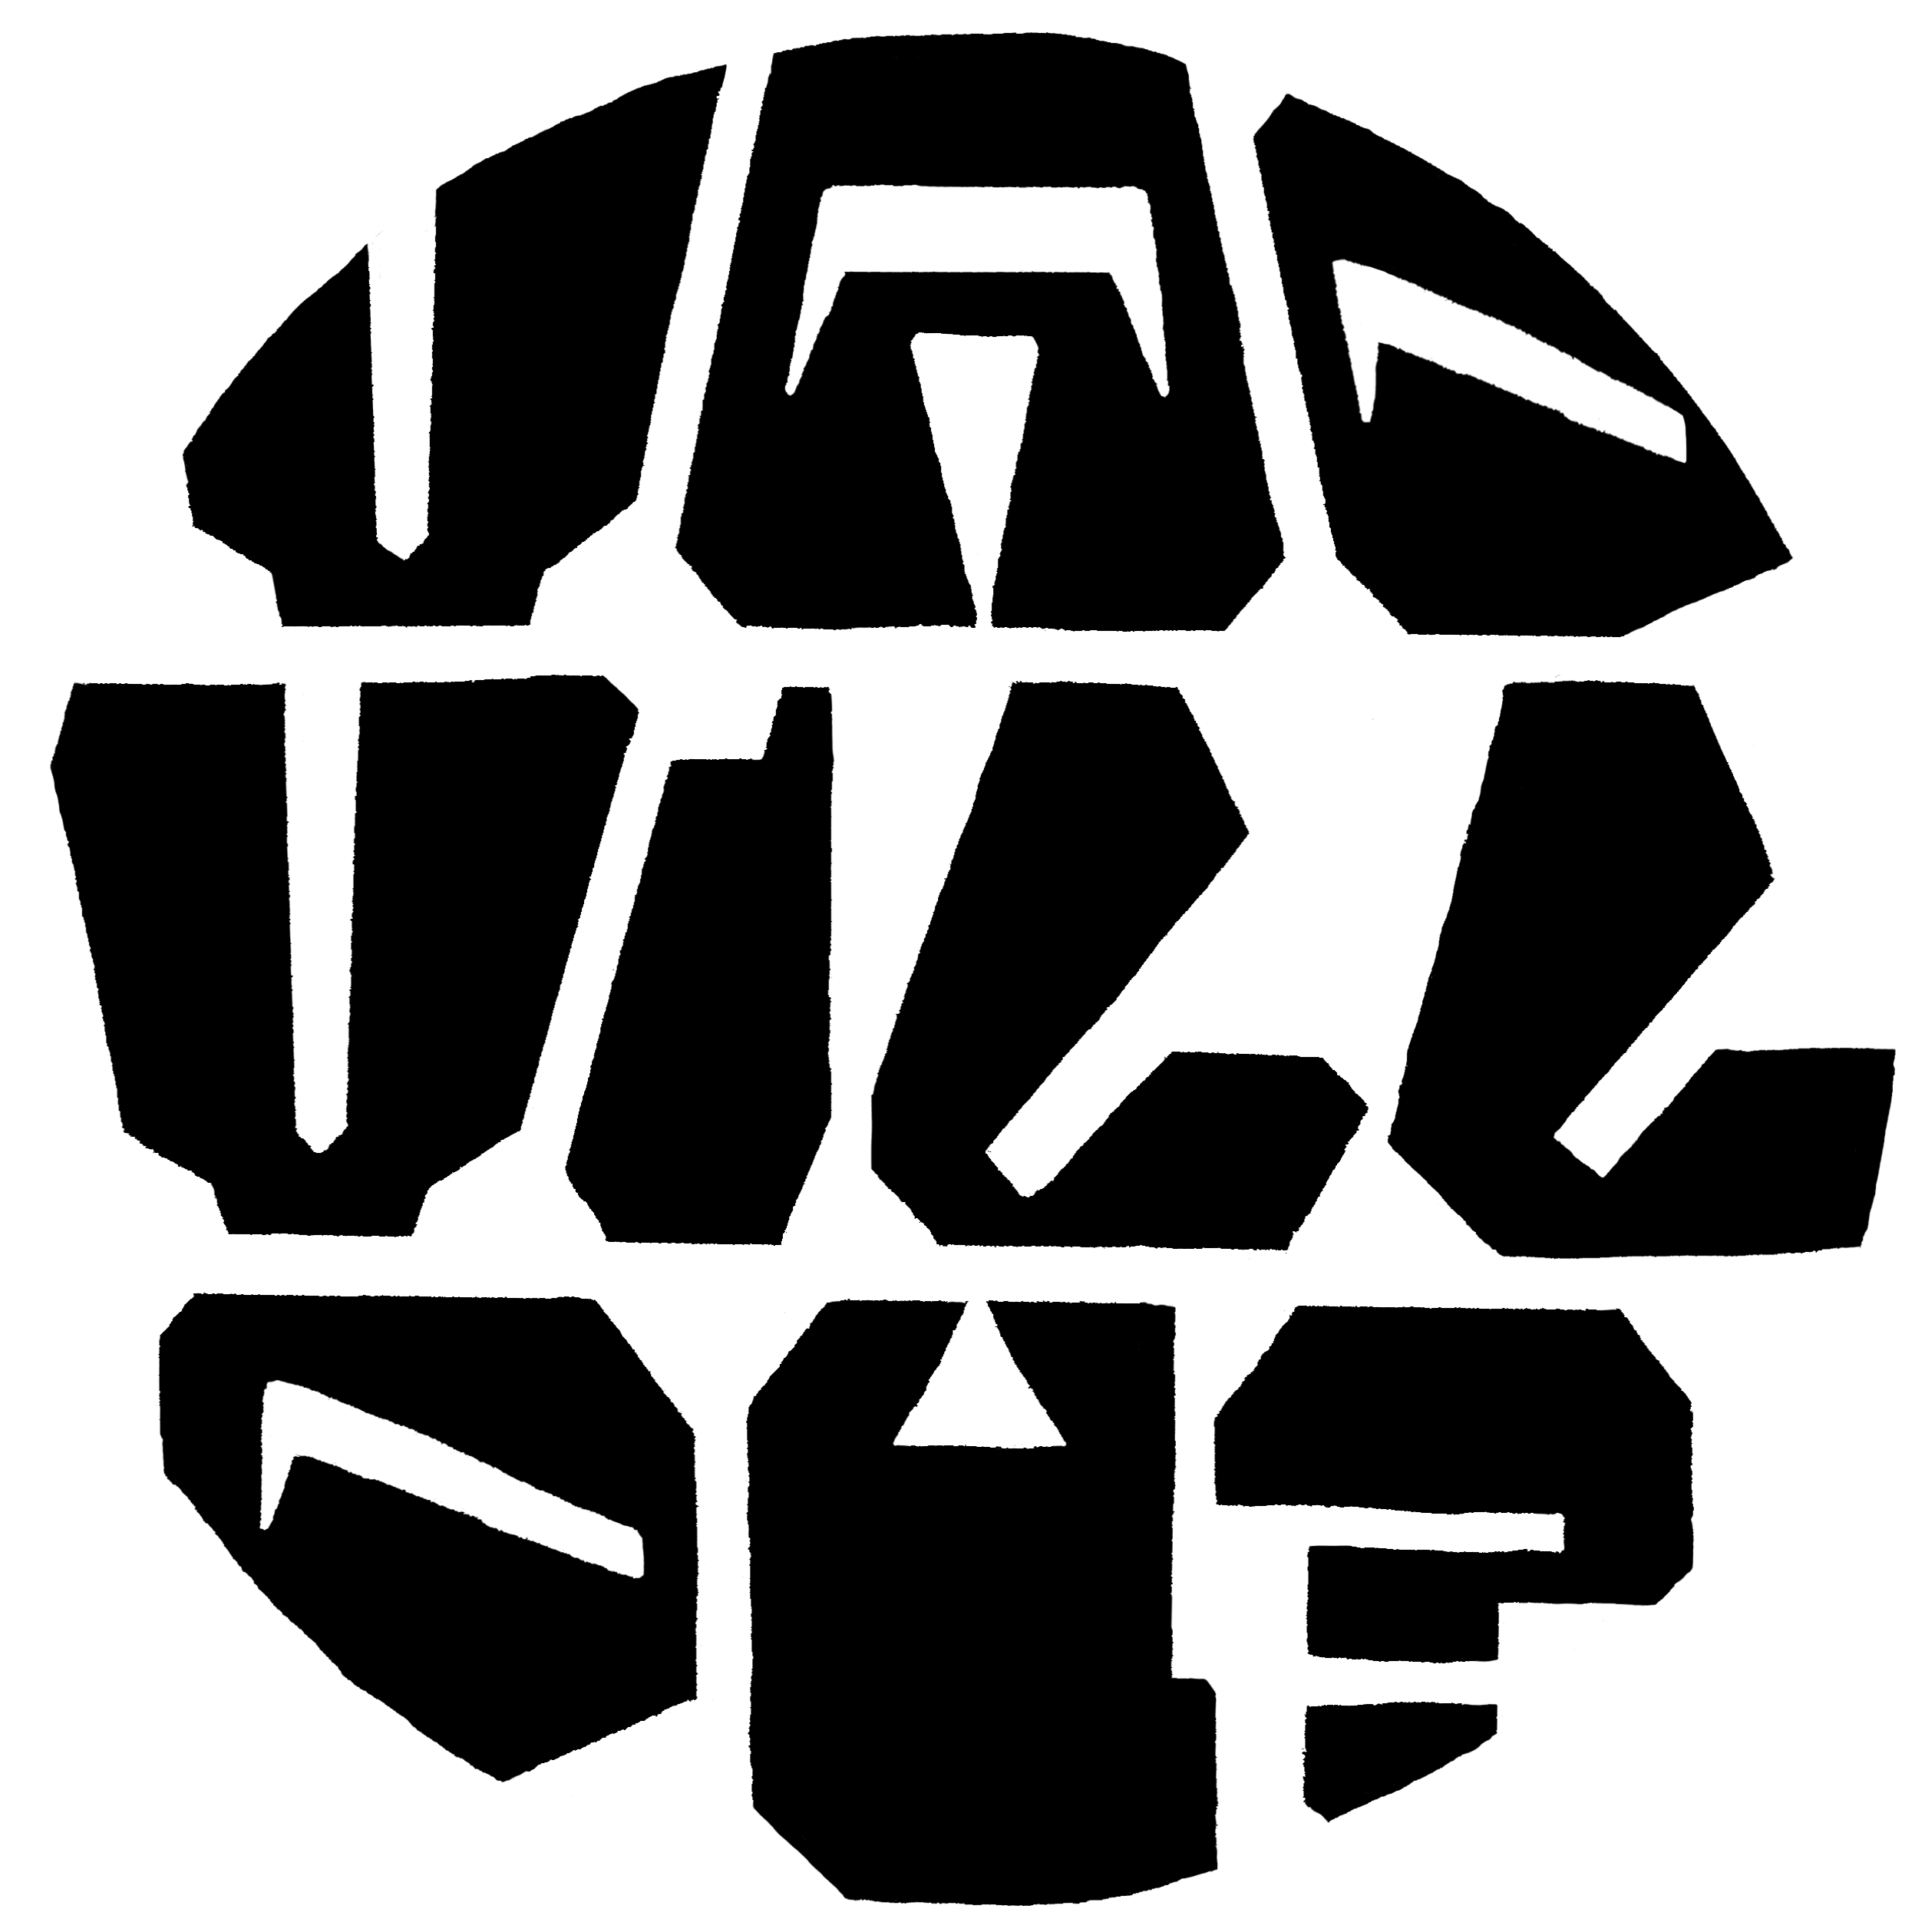 VADVILLDULOGO_inverted